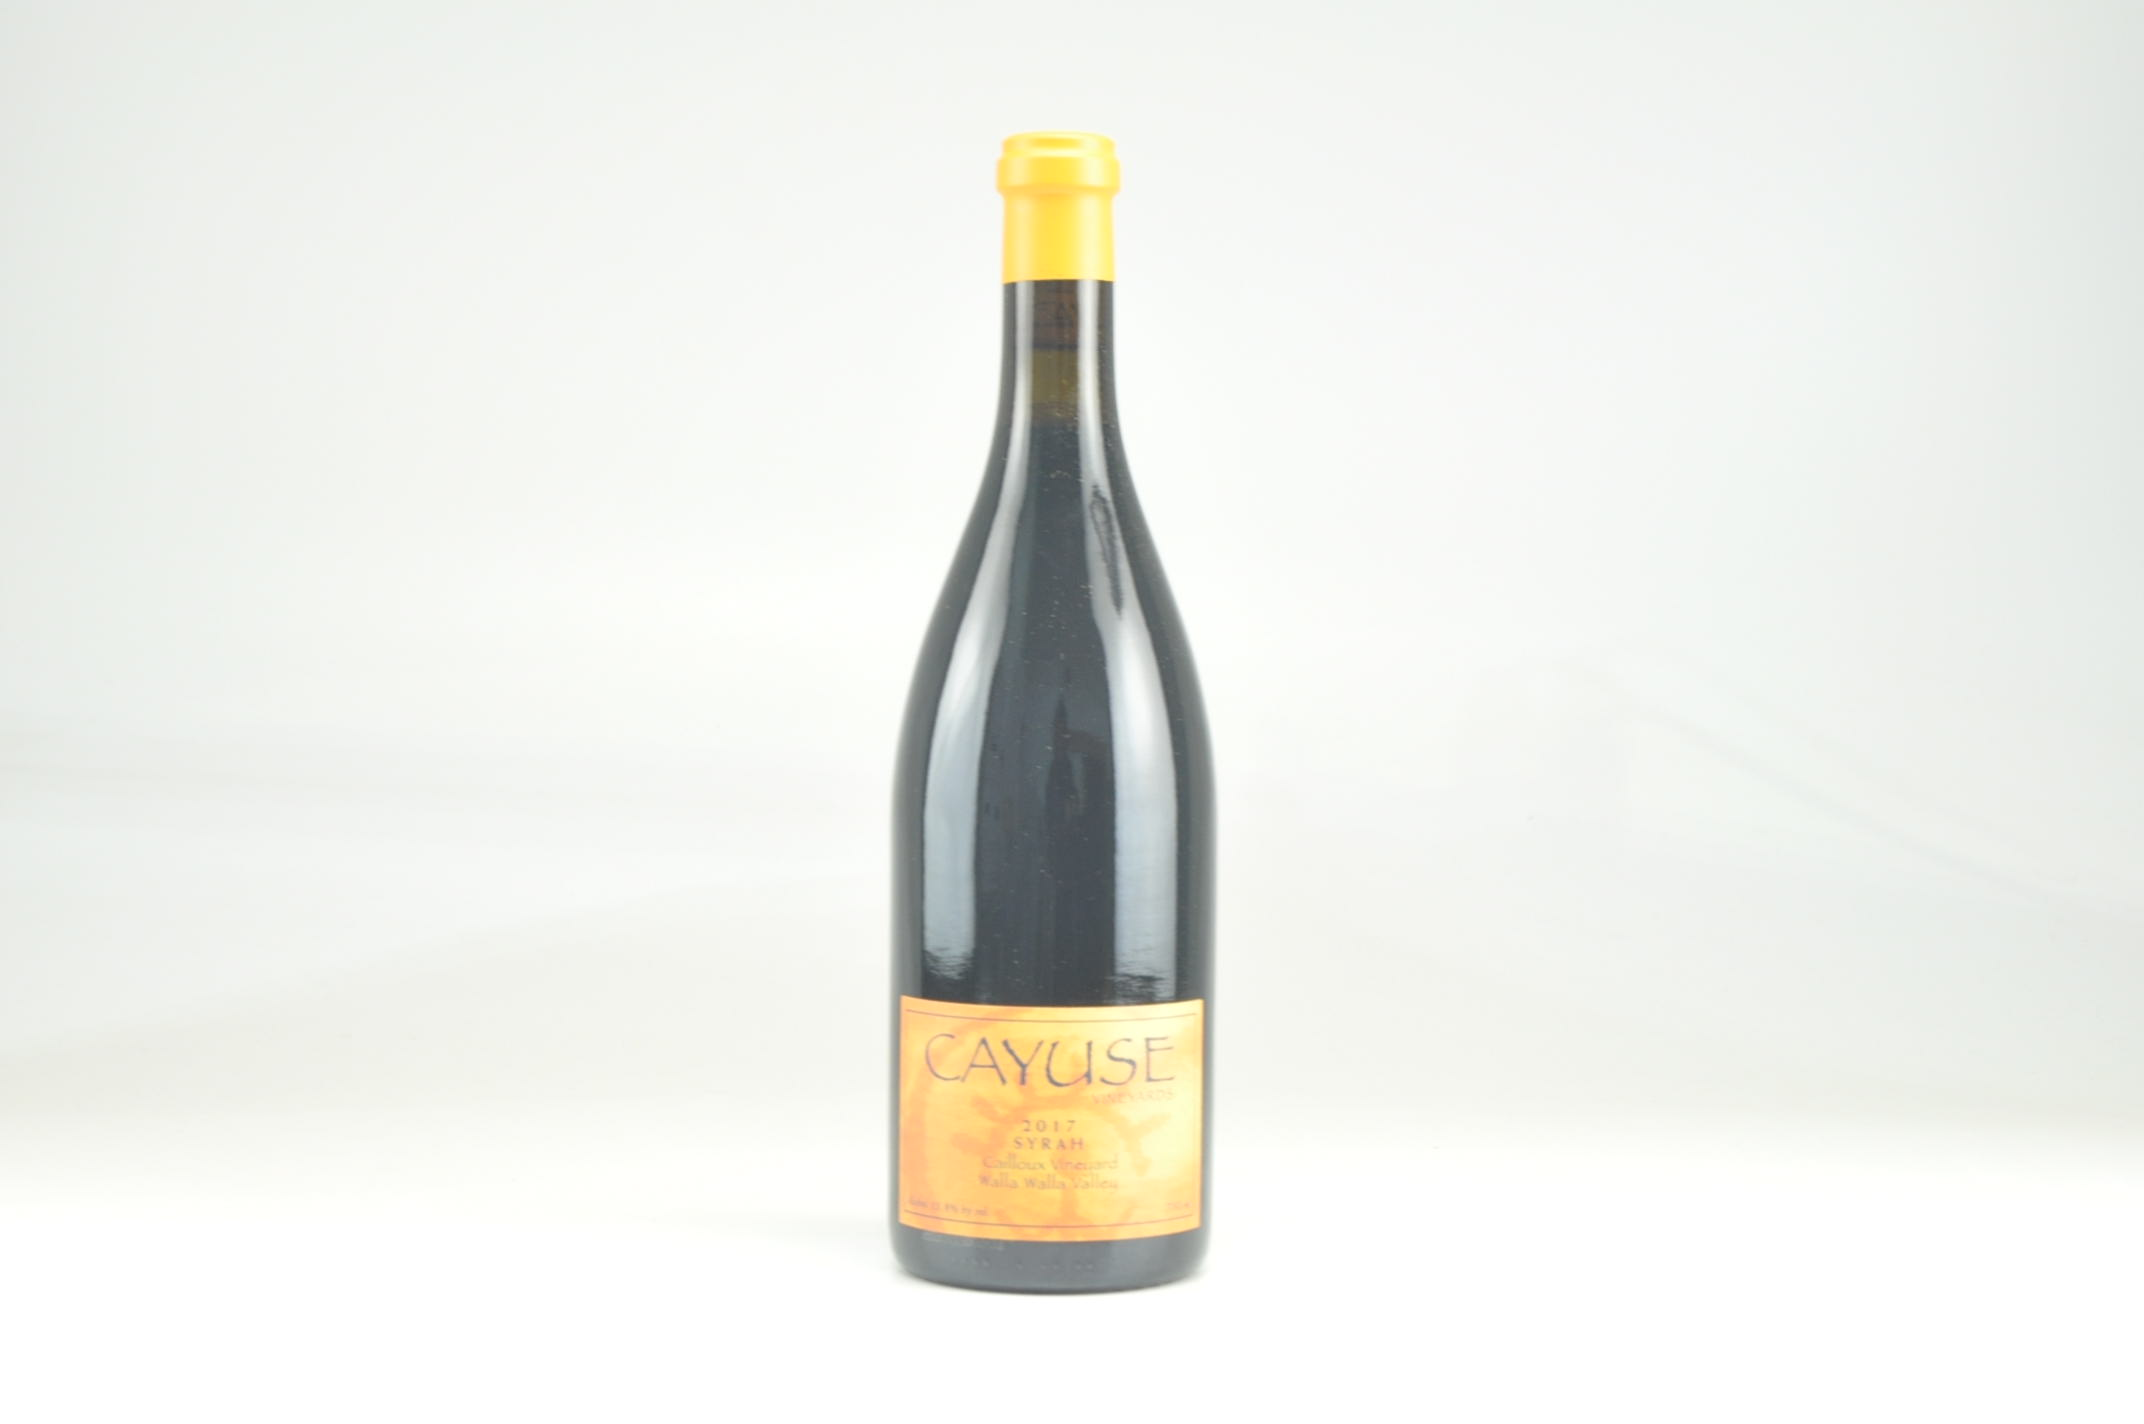 2016 Cayuse Syrah Cailloux Vineyard, Walla Walla Valley Other--97--99